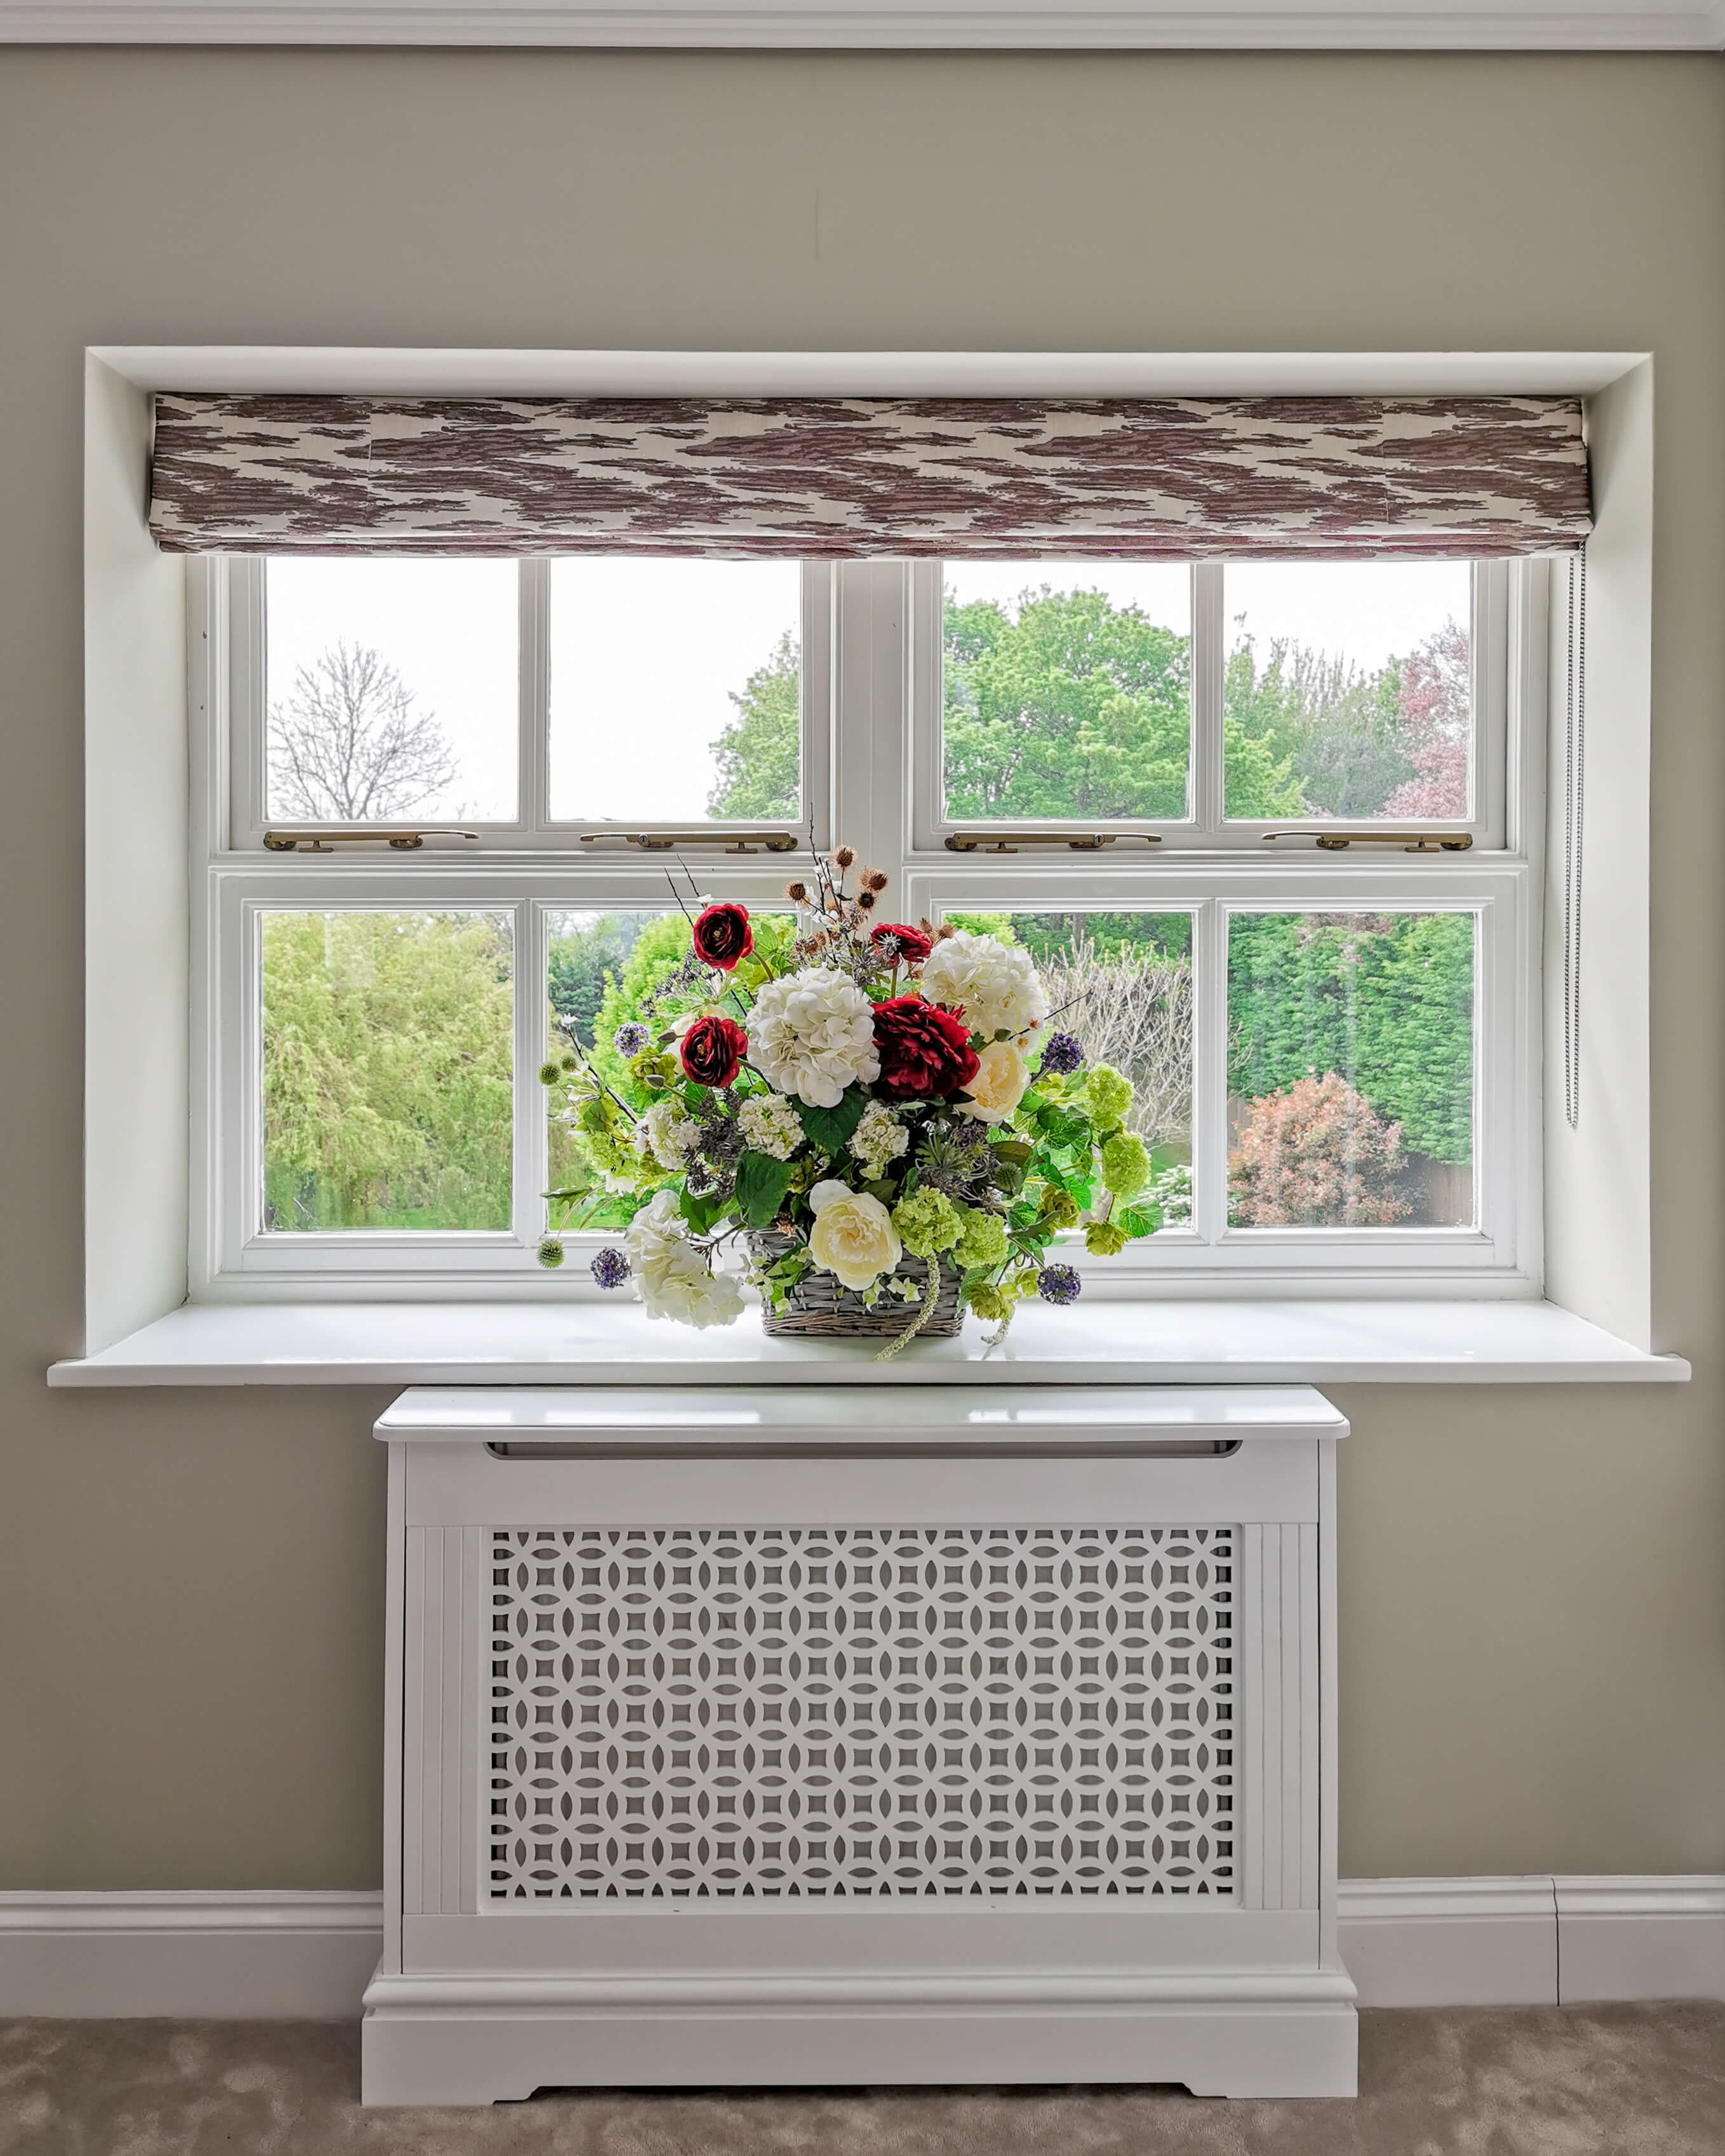 Patterned roman blind and flowers